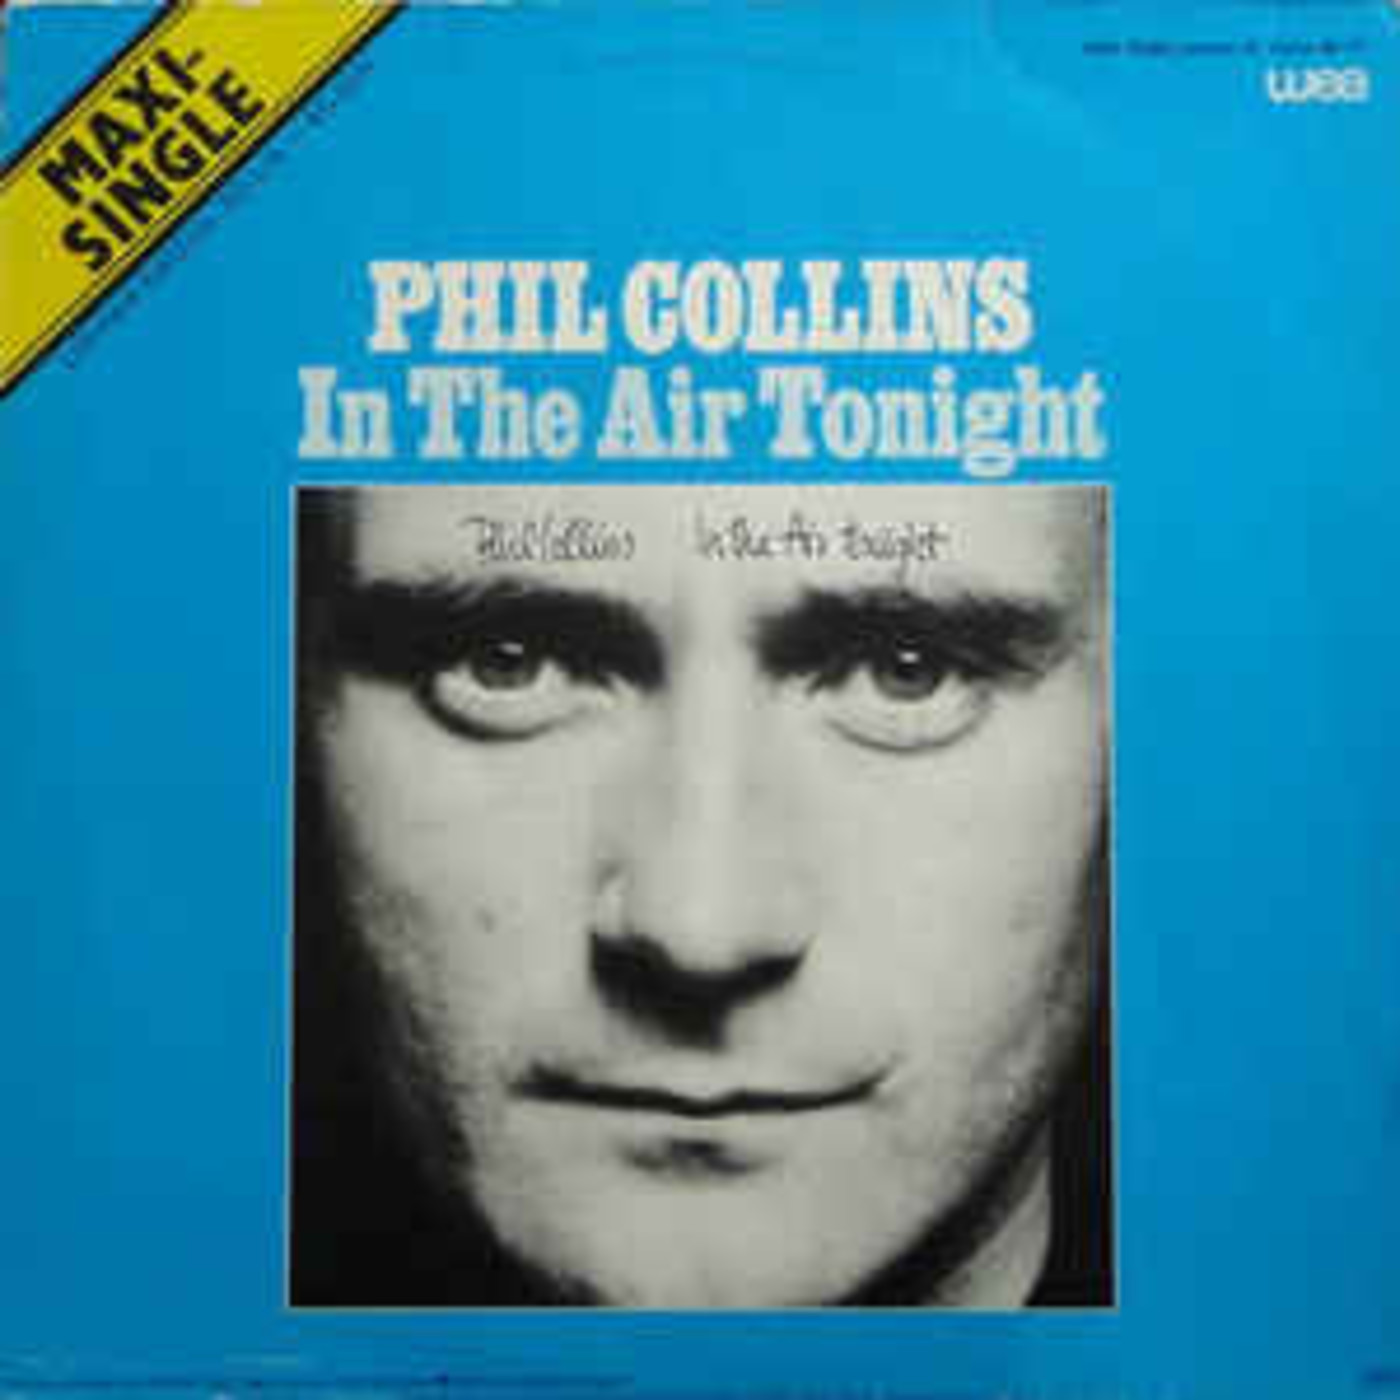 PHIL COLLINS - In the air tonight (1981)